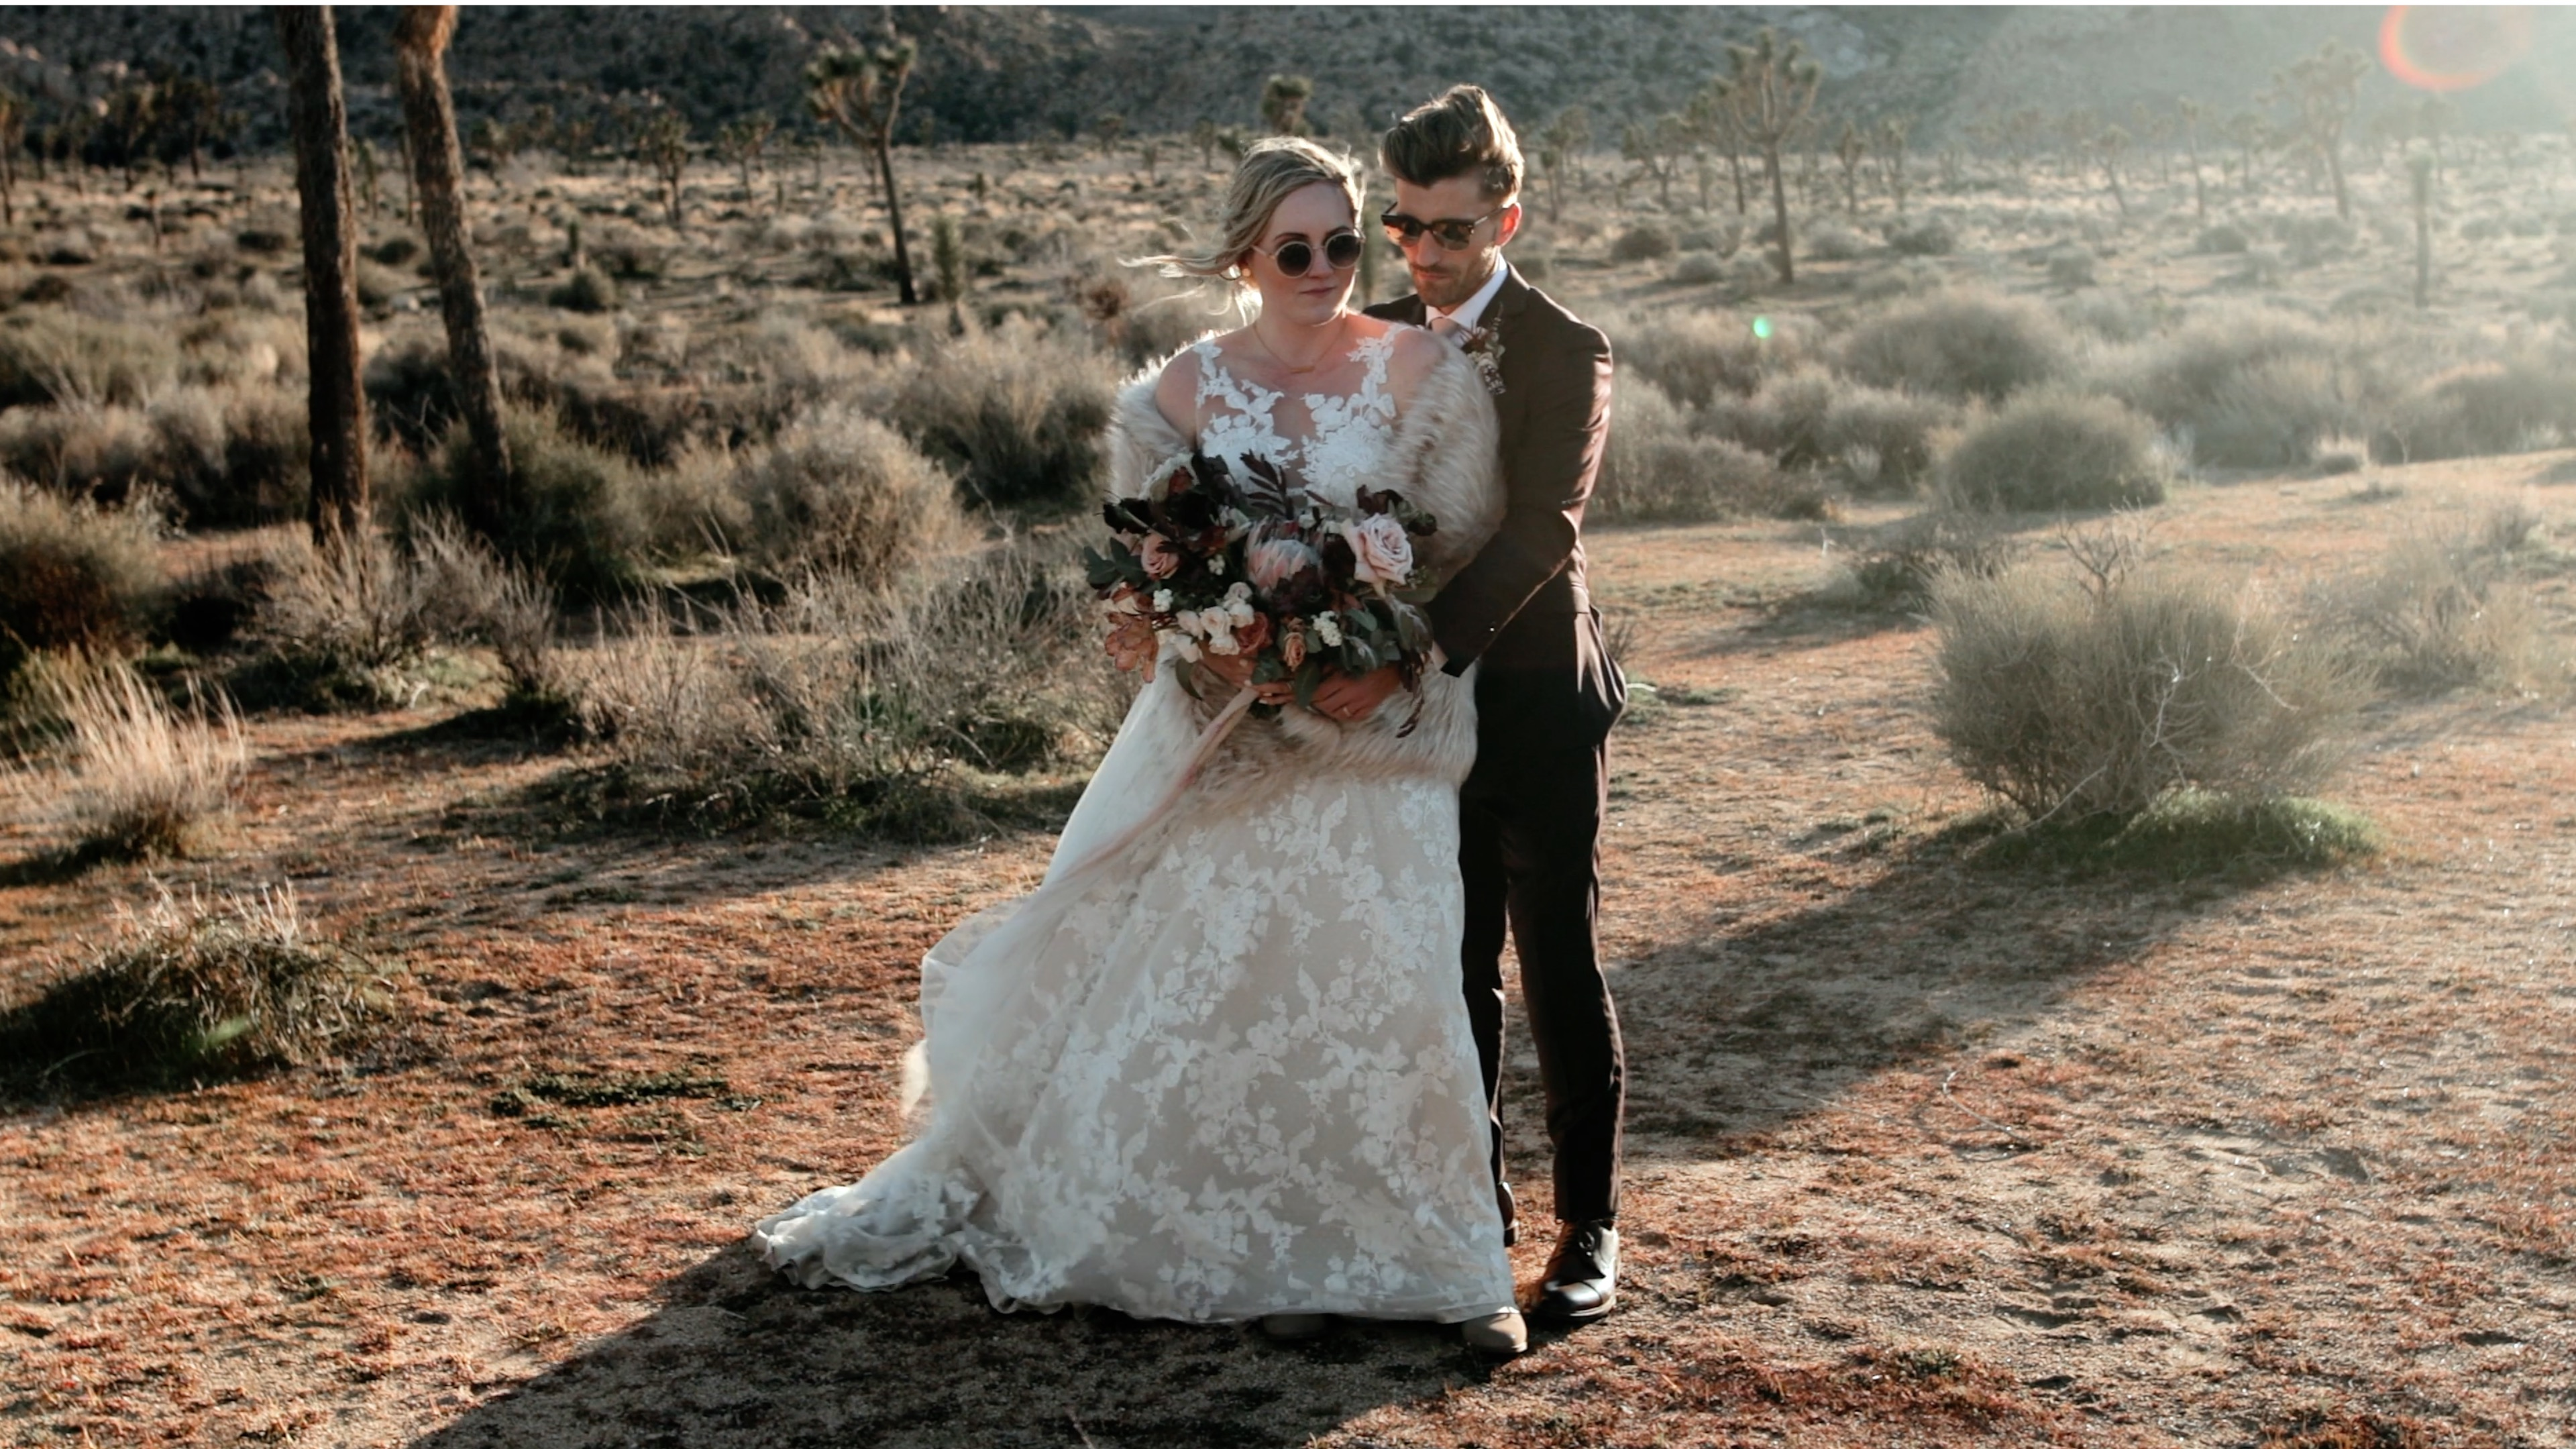 Jordan + Josh | Joshua Tree, California | The Hi Desert Ranch